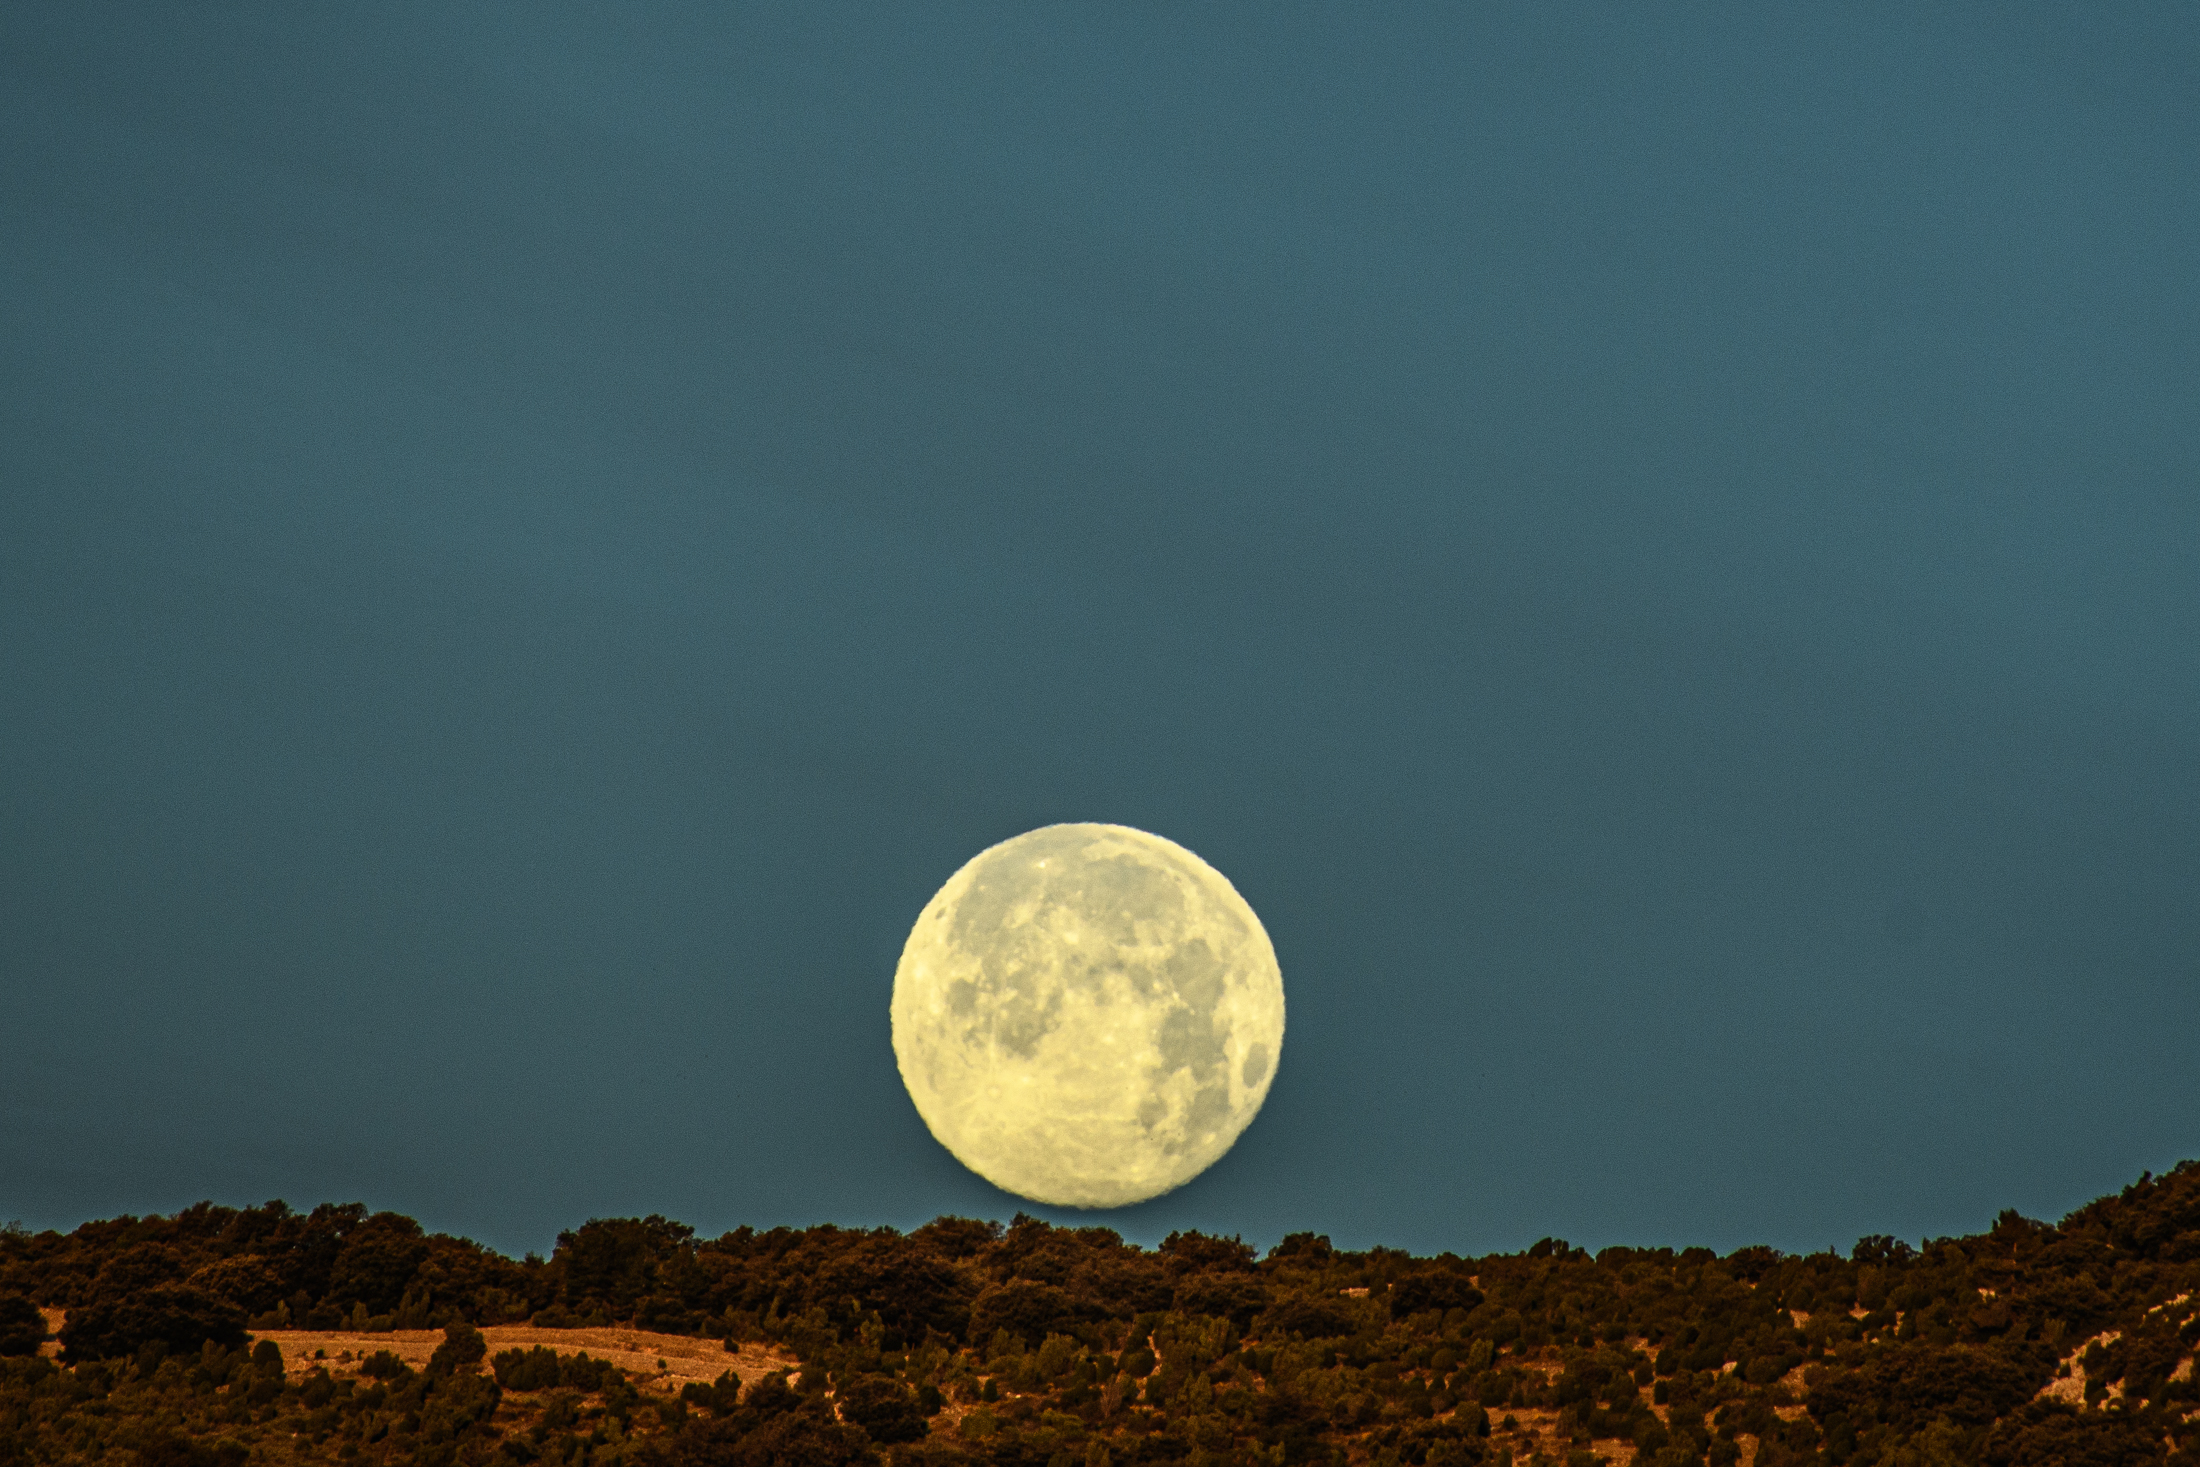 Full moon early morning, El Maestrat, march 2020